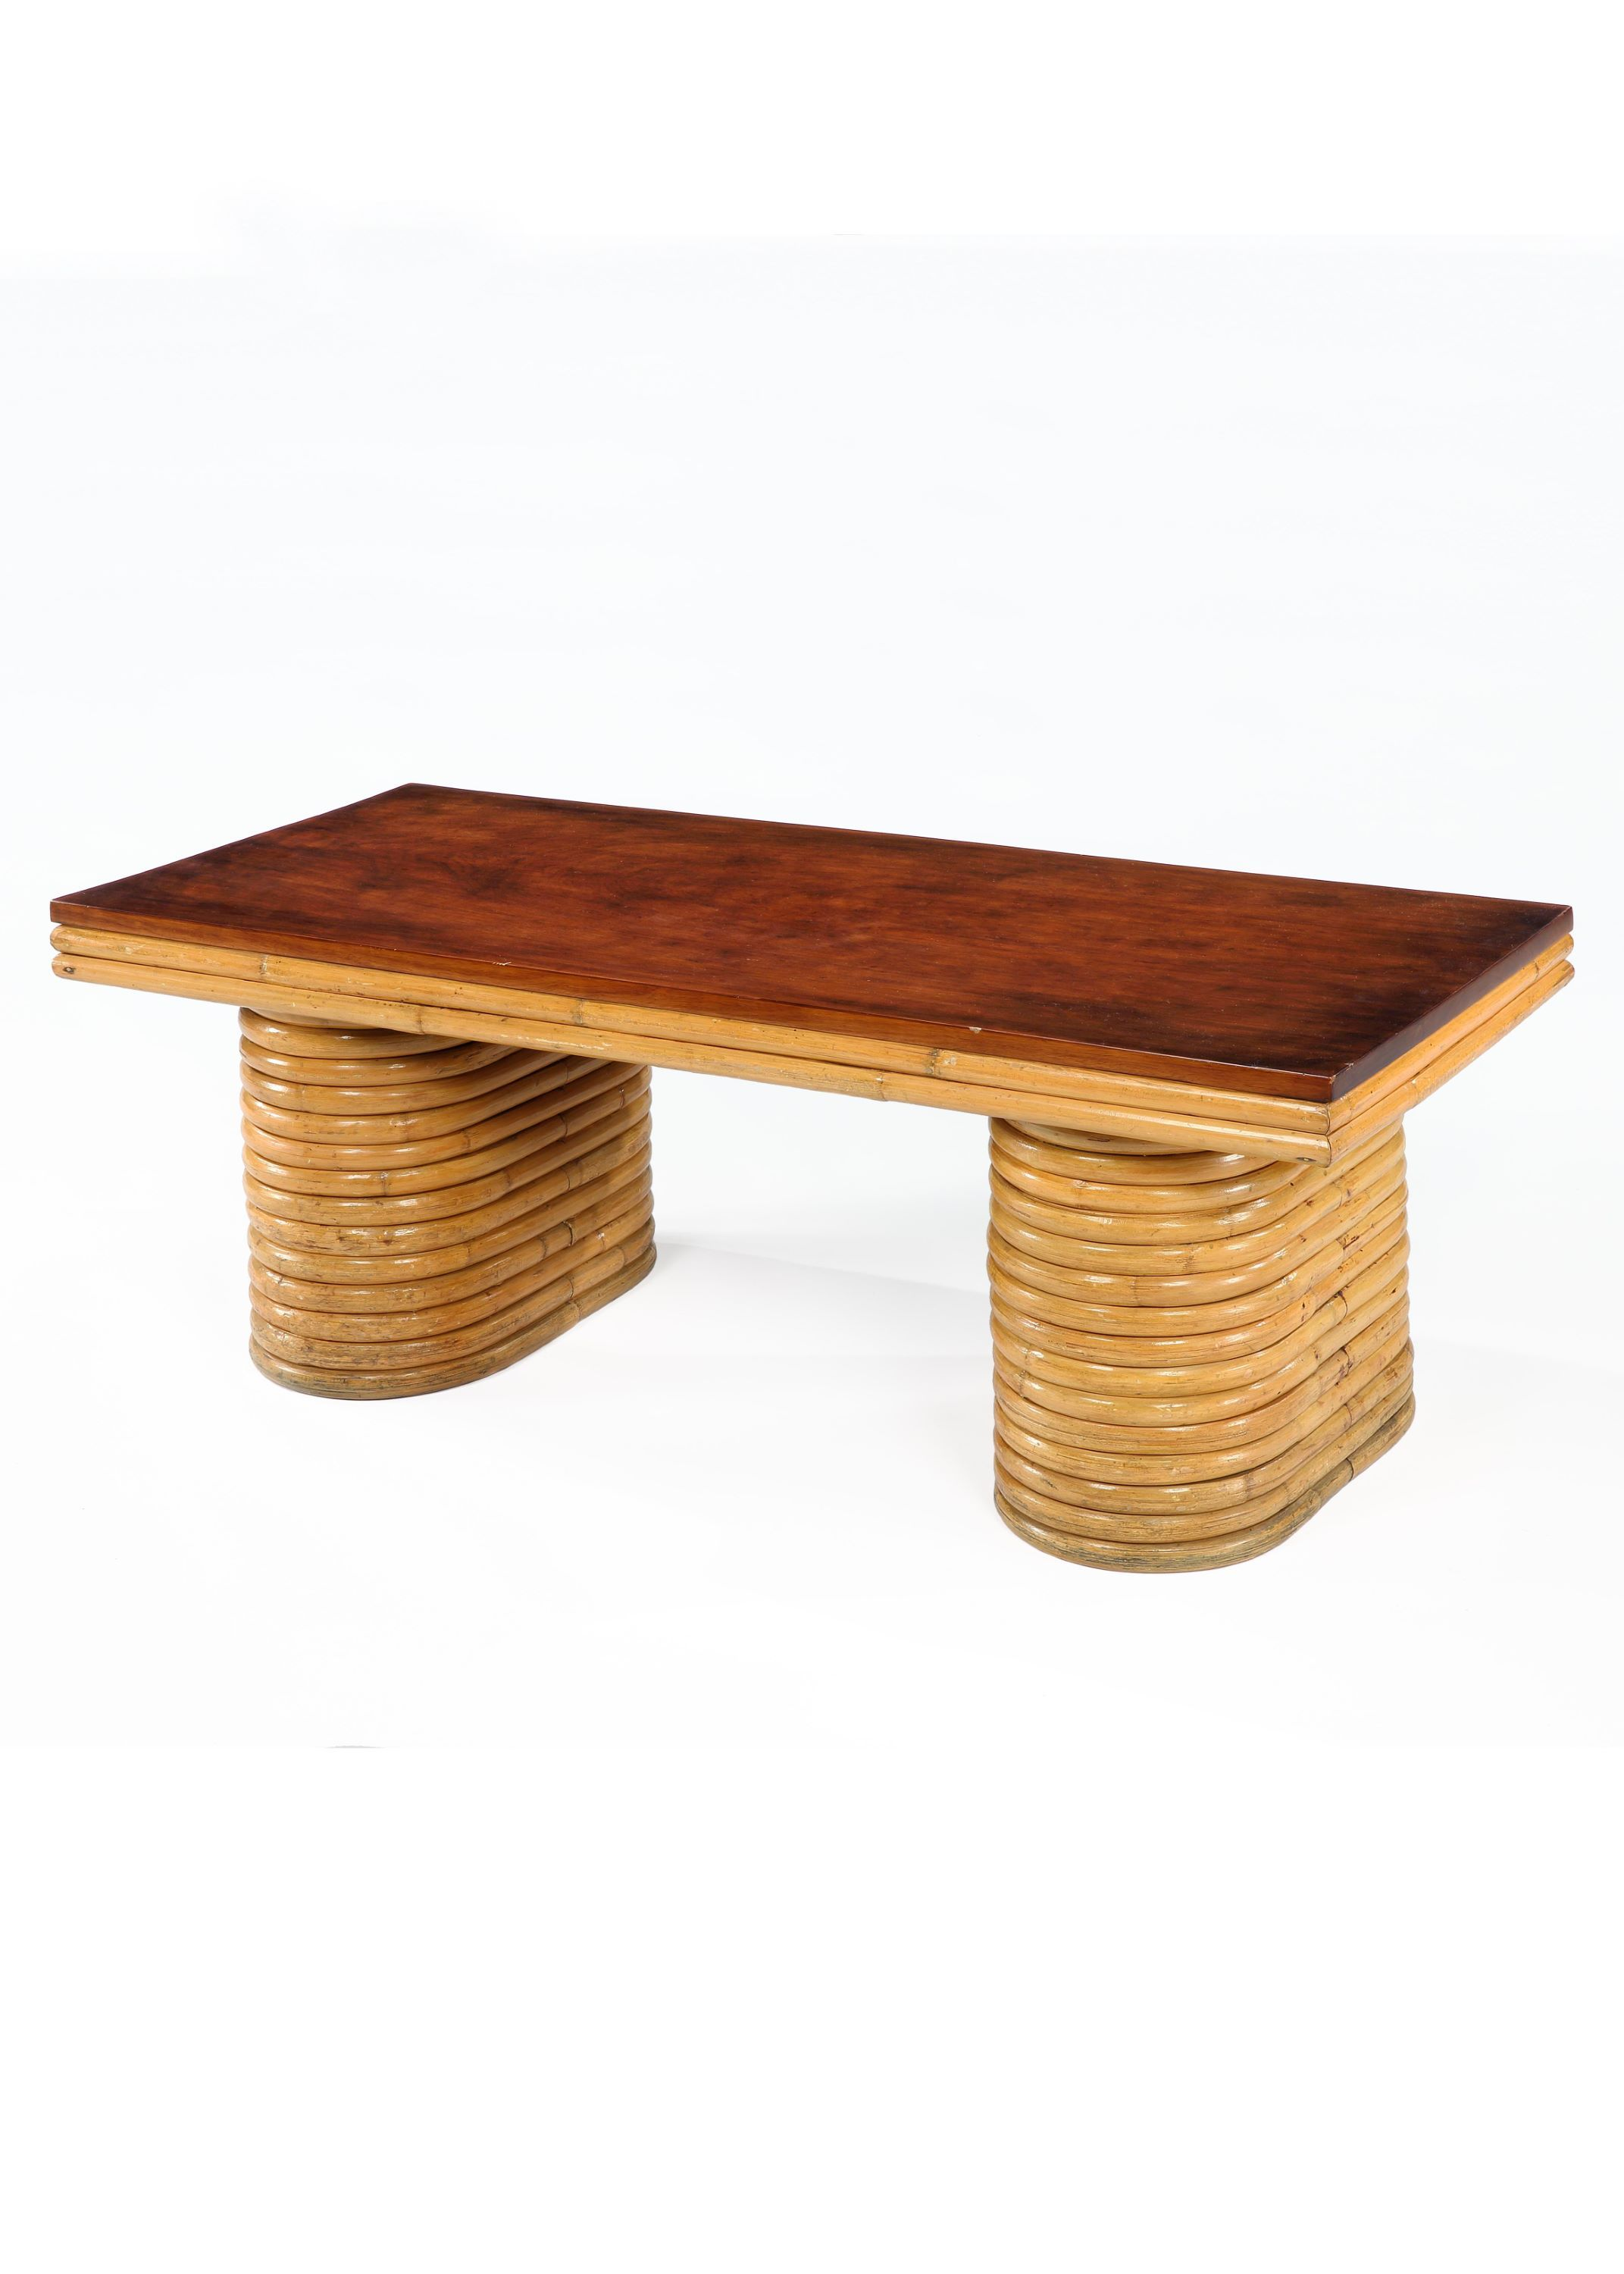 Bamboo & Mahogany Coffee Table by Paul Frankl